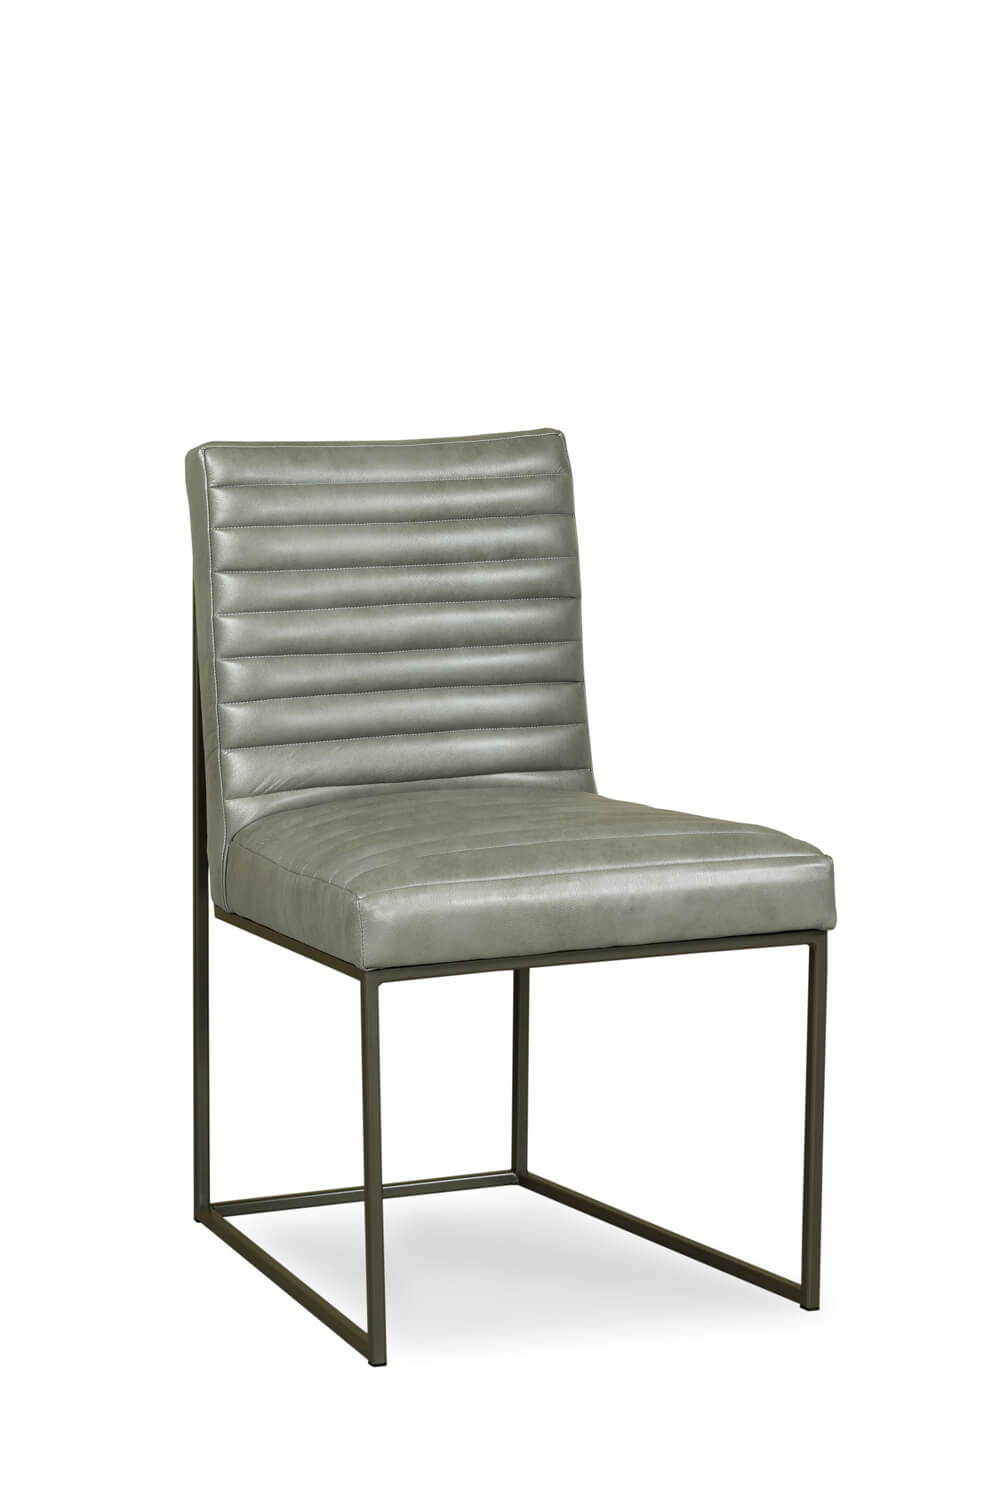 Fairfield Chair's Uma Metal Modern Side Chair with Channeled Cushion